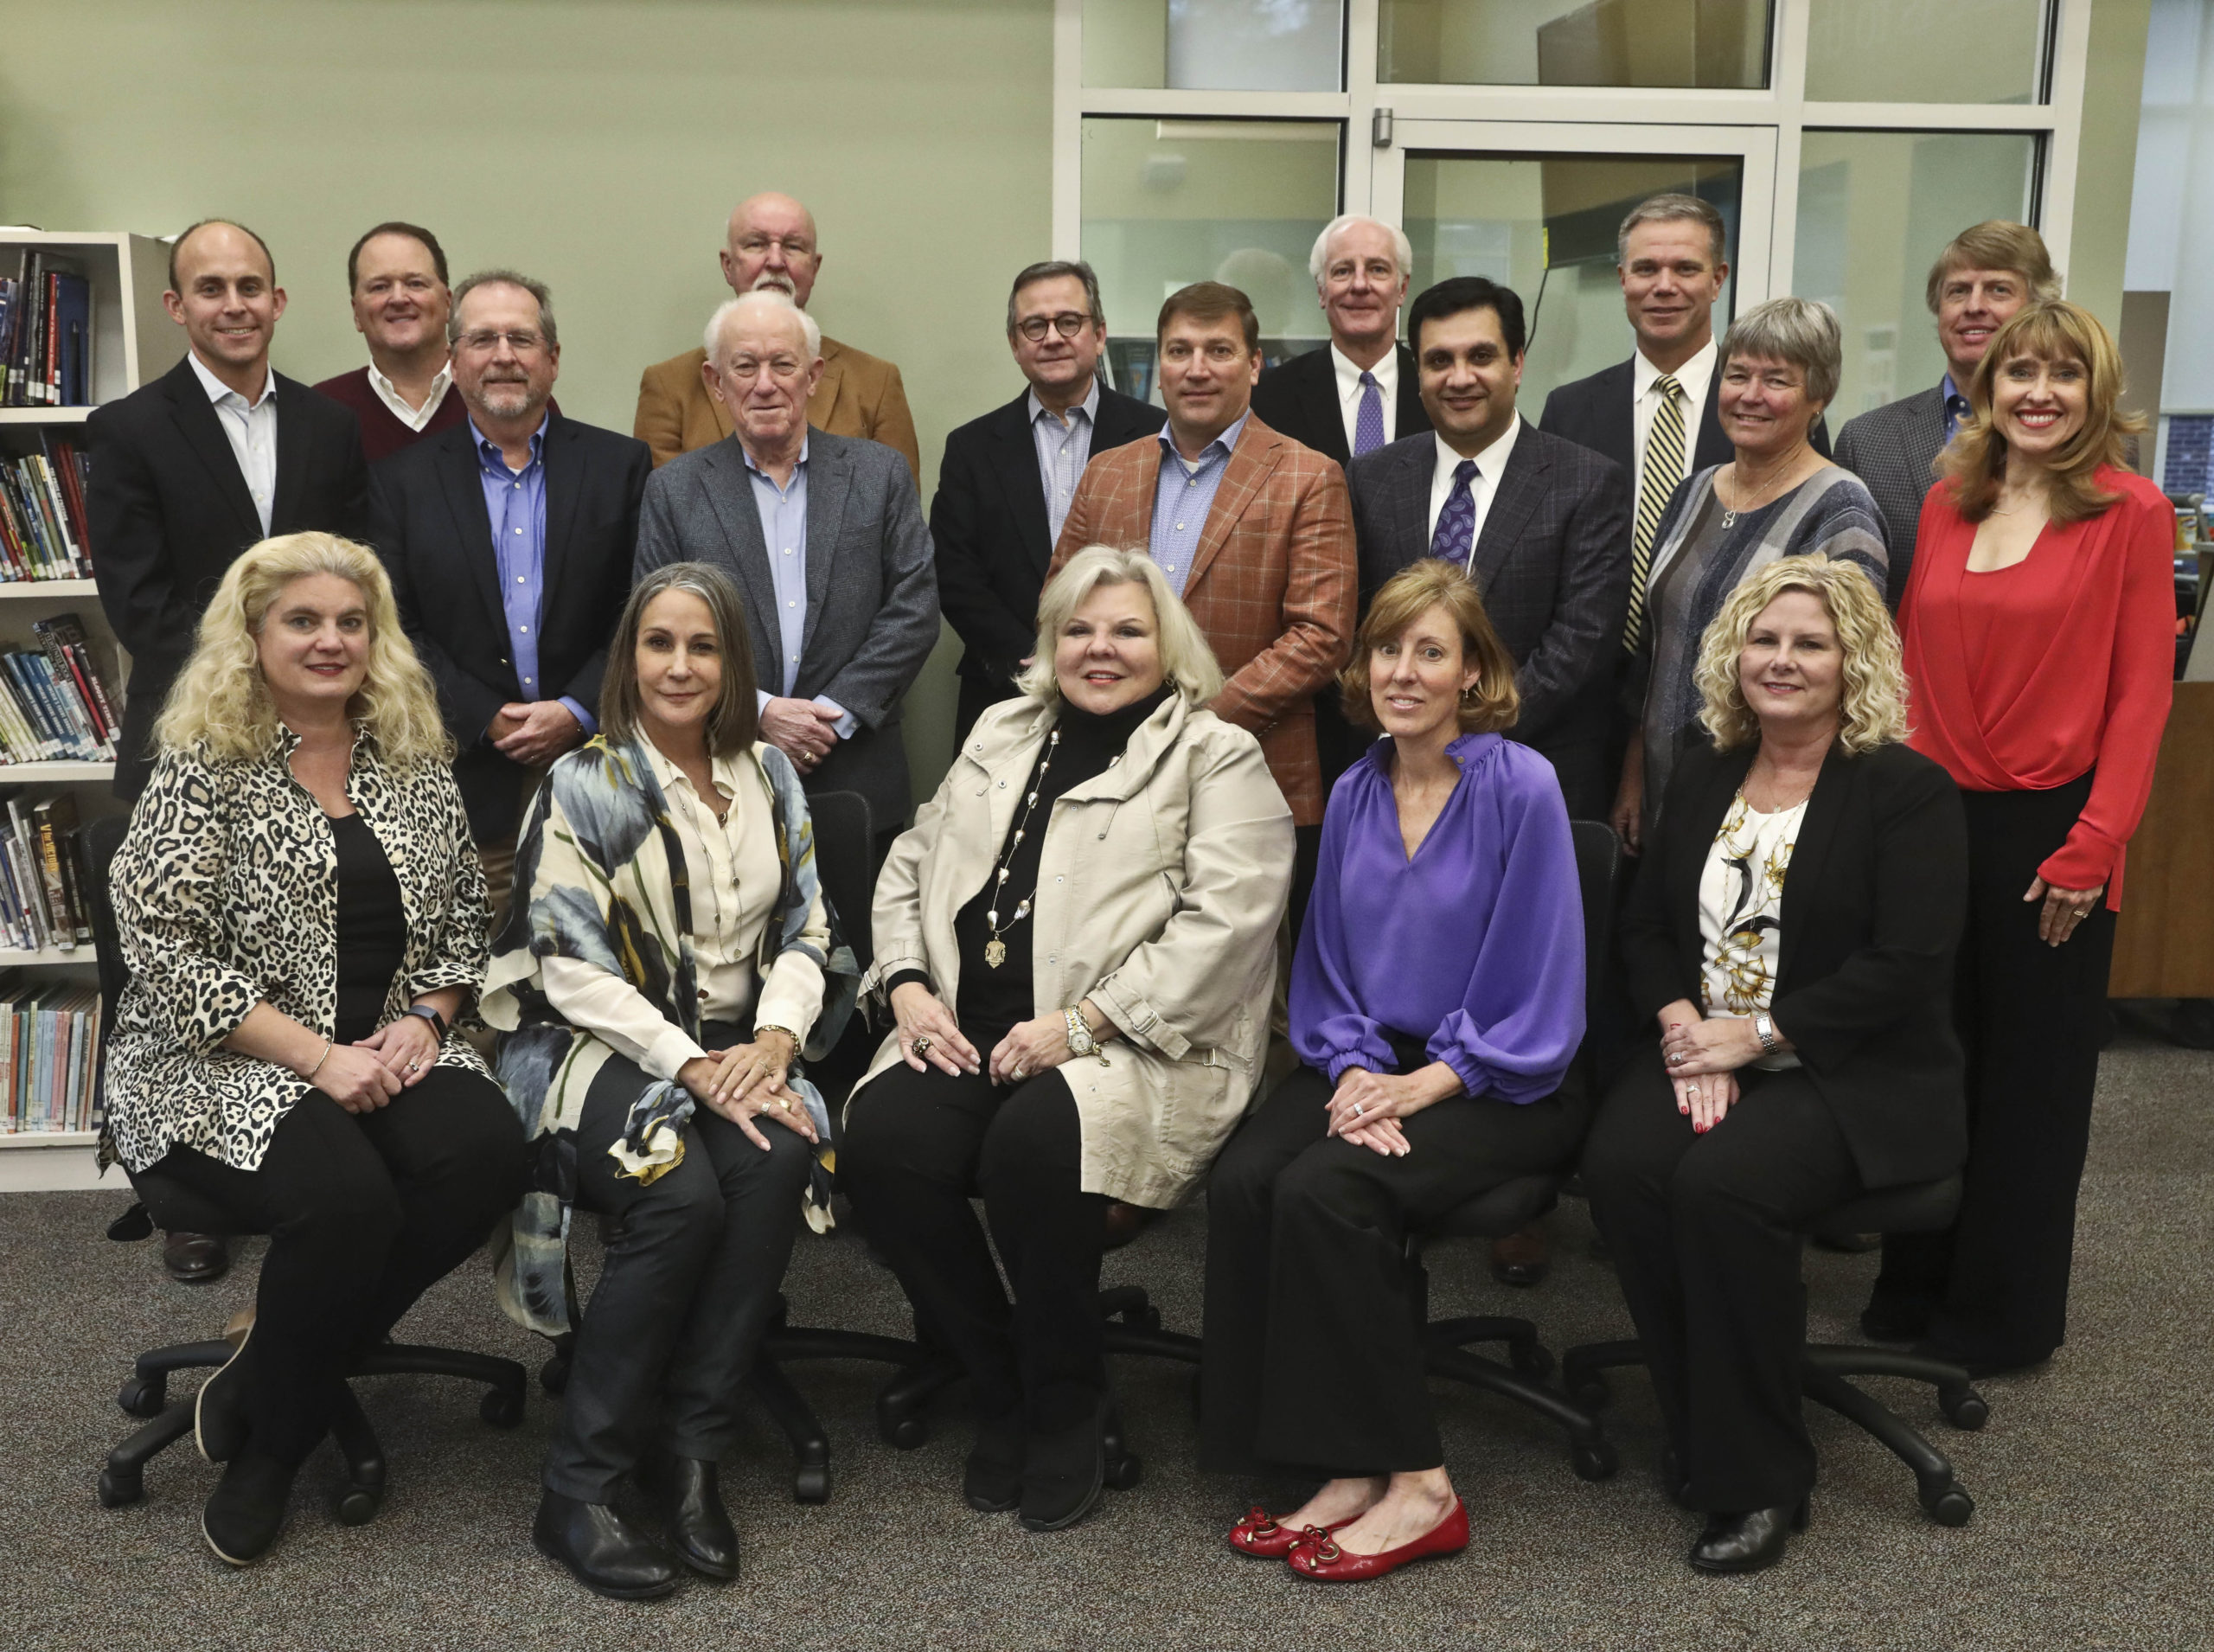 2020 Board of Trustees